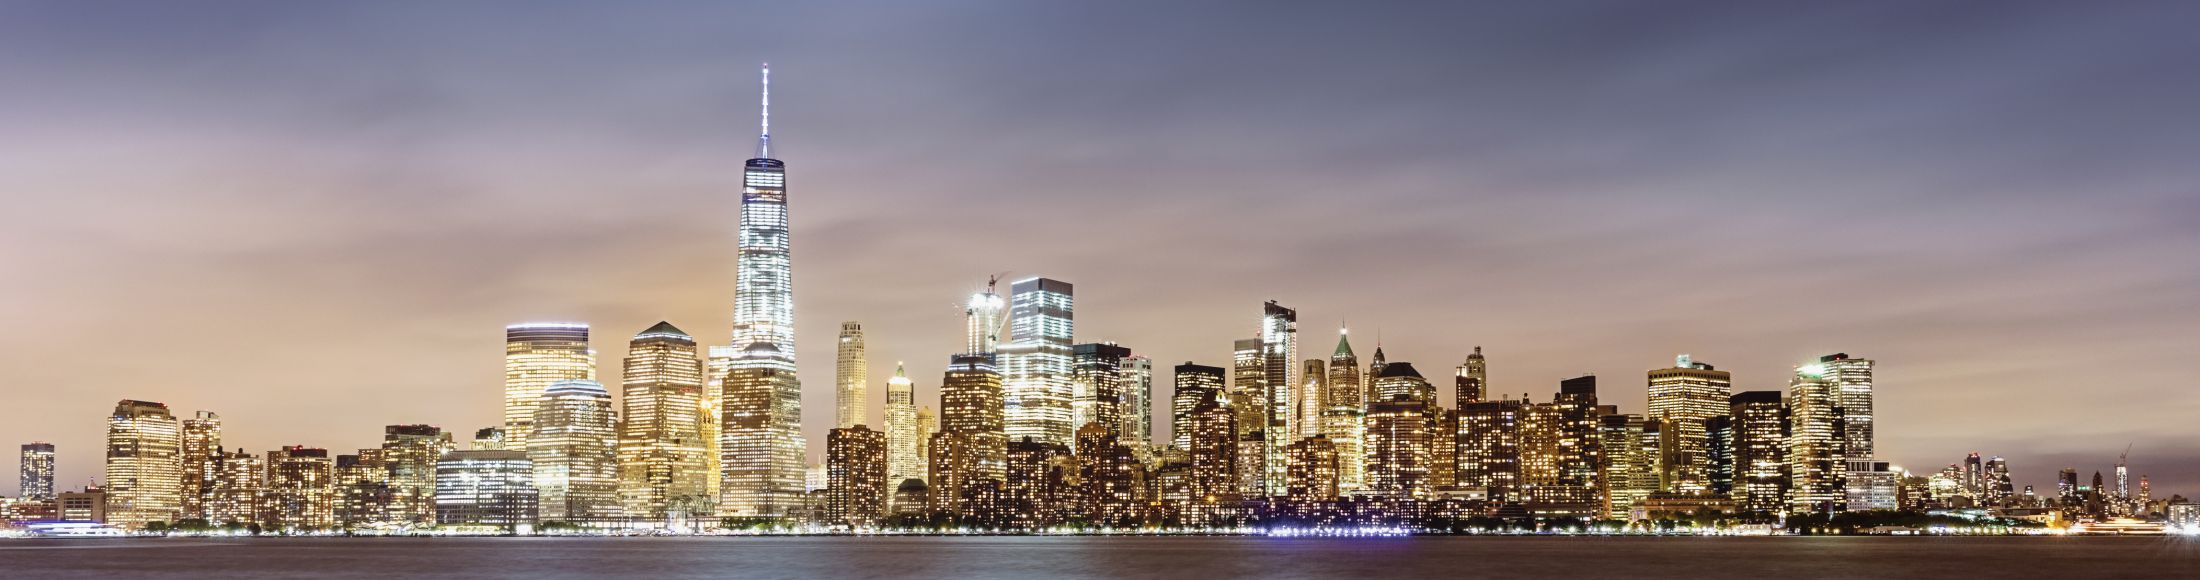 New York City's Travel Hot Spot